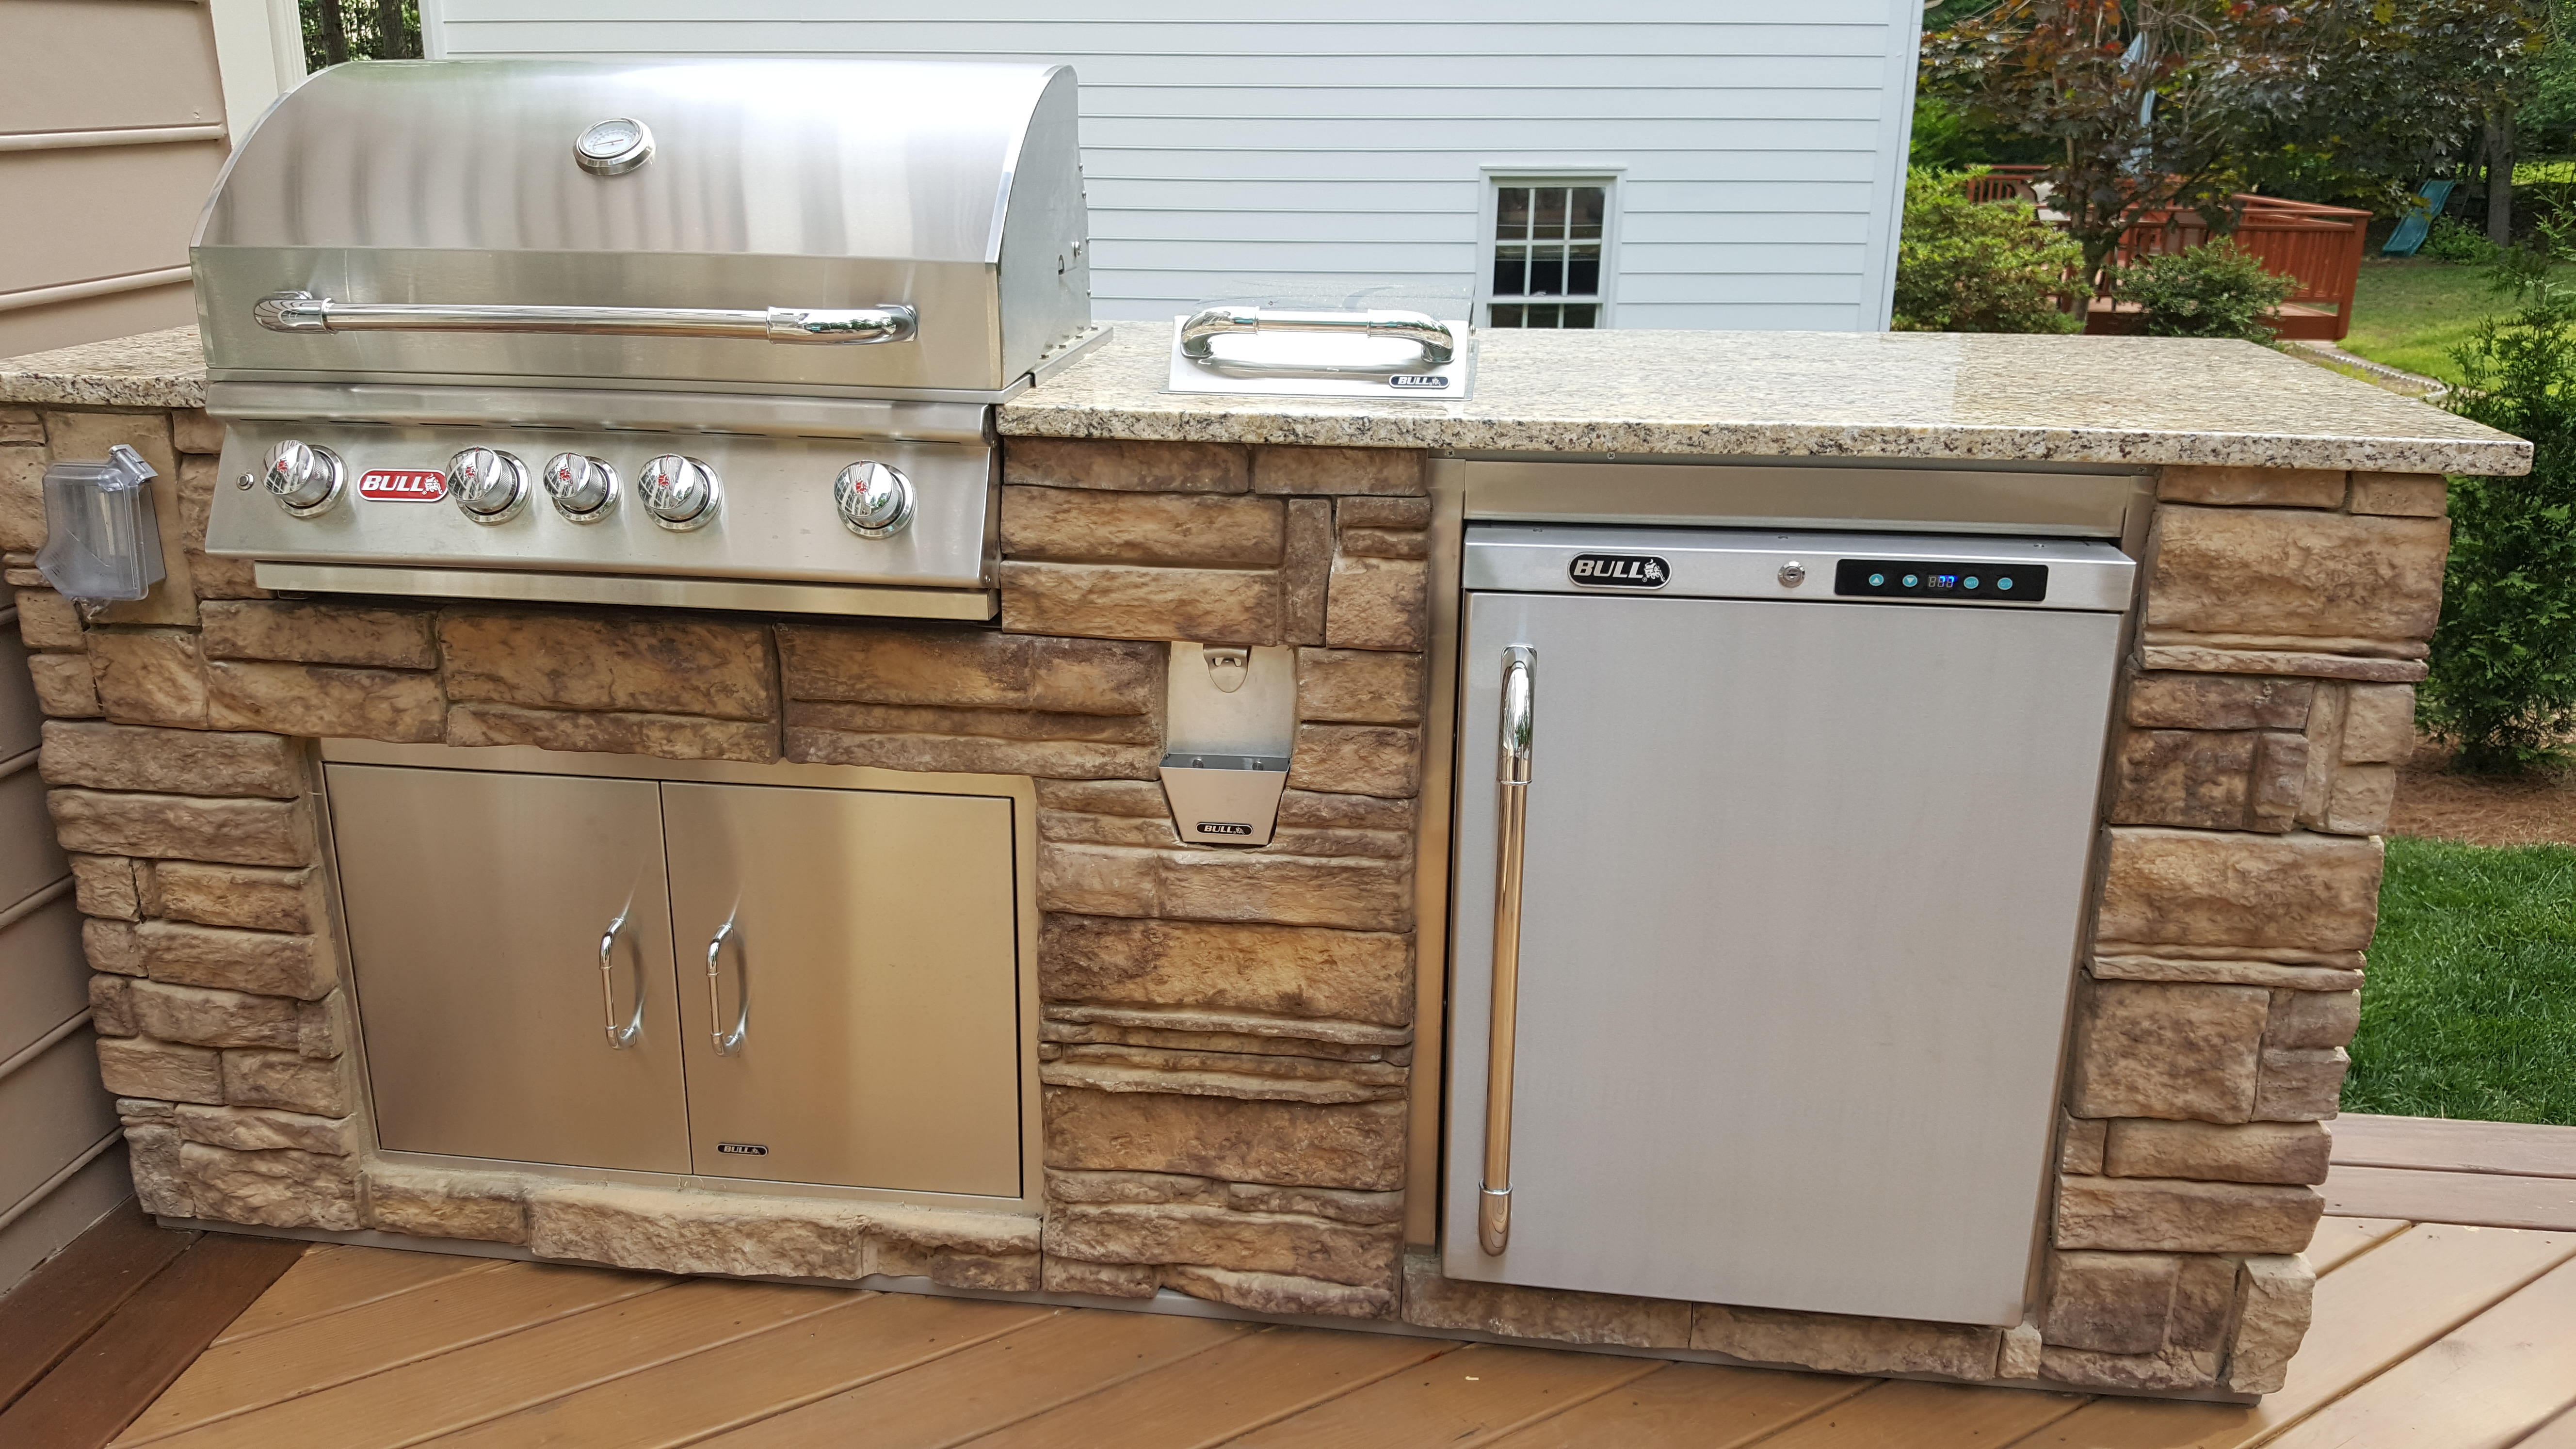 If Choice Pools Spas Can Help Guide In Any Way We Re Here To Want You Love Your New Custom Outdoor Kitchen As Much Designing Them